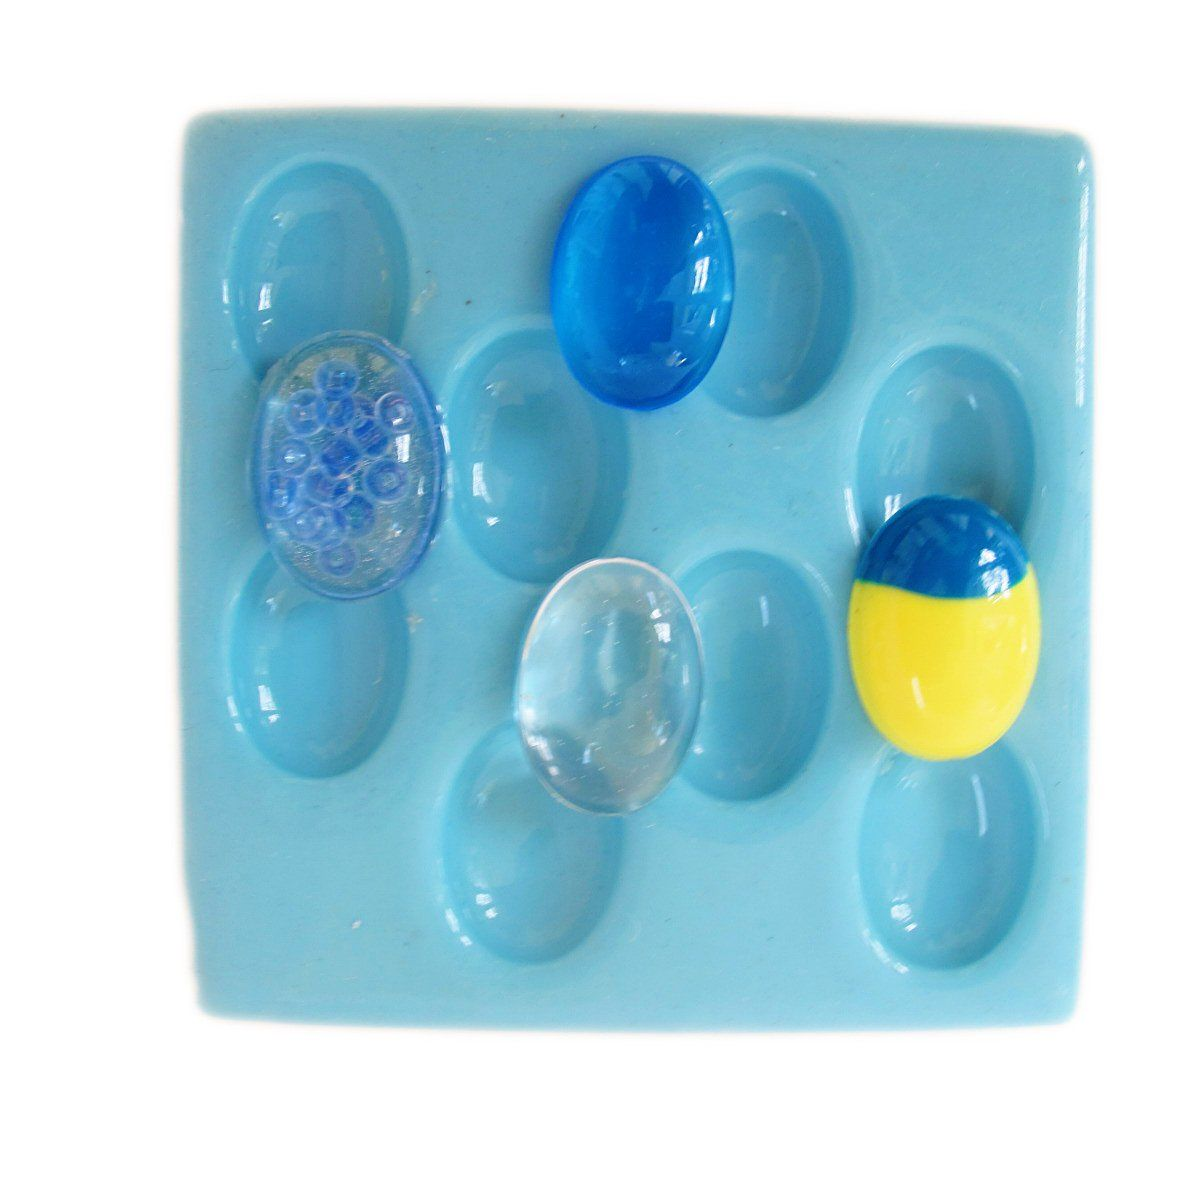 25 mm by 18 mm cabochon reusable silicone mold